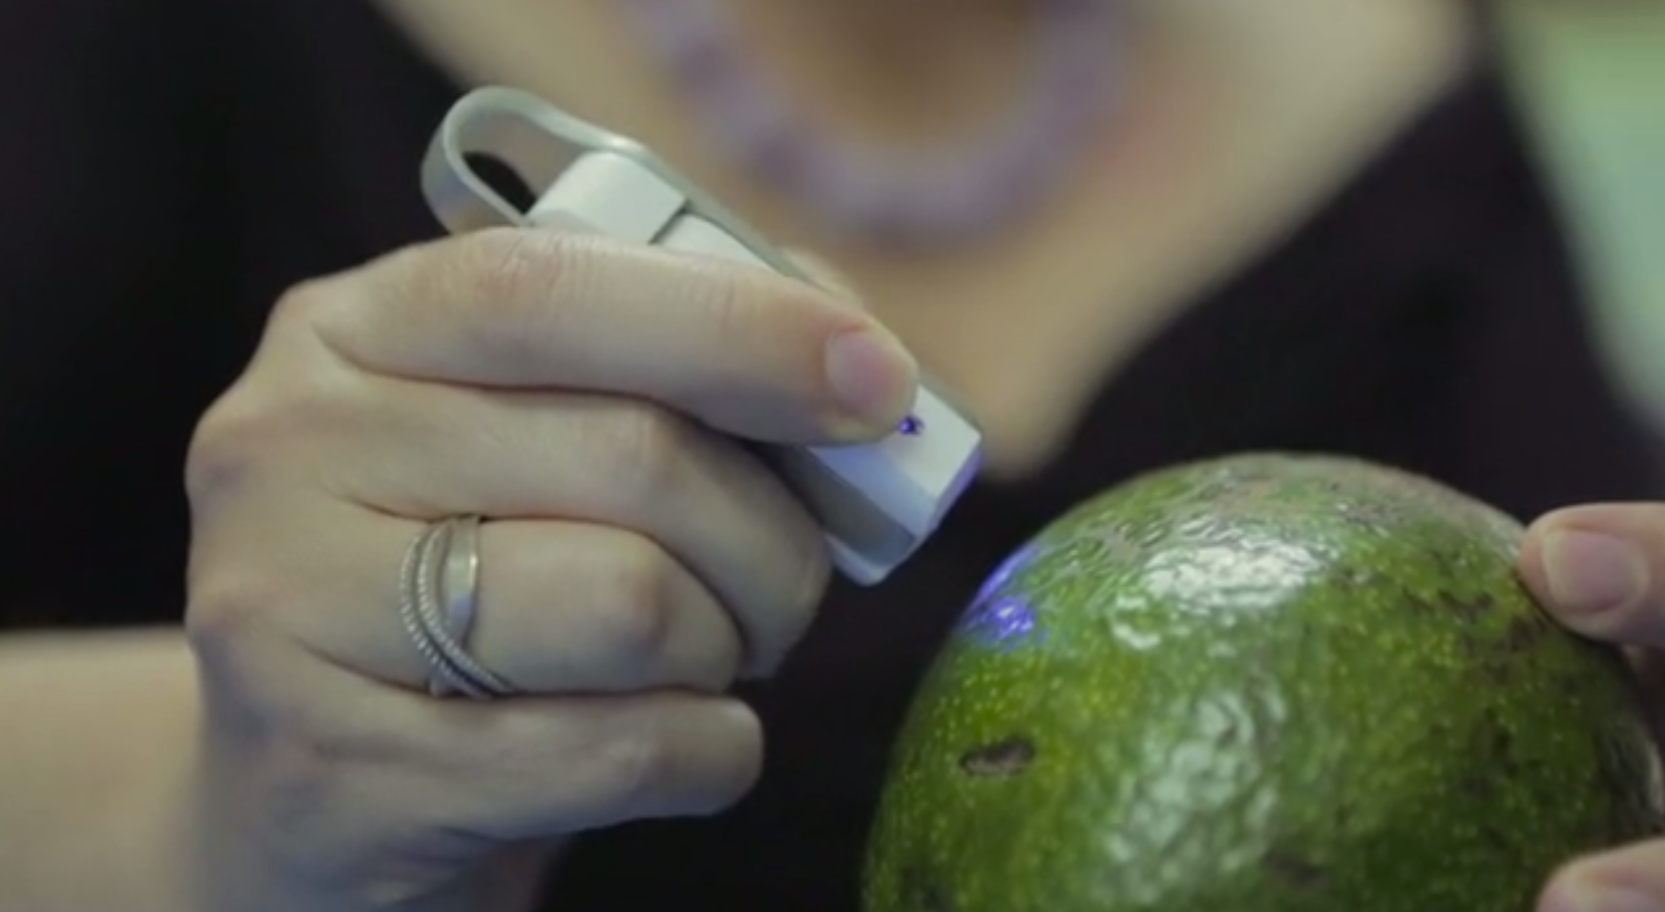 hand held spectroscopy tool lets you examine the molecular